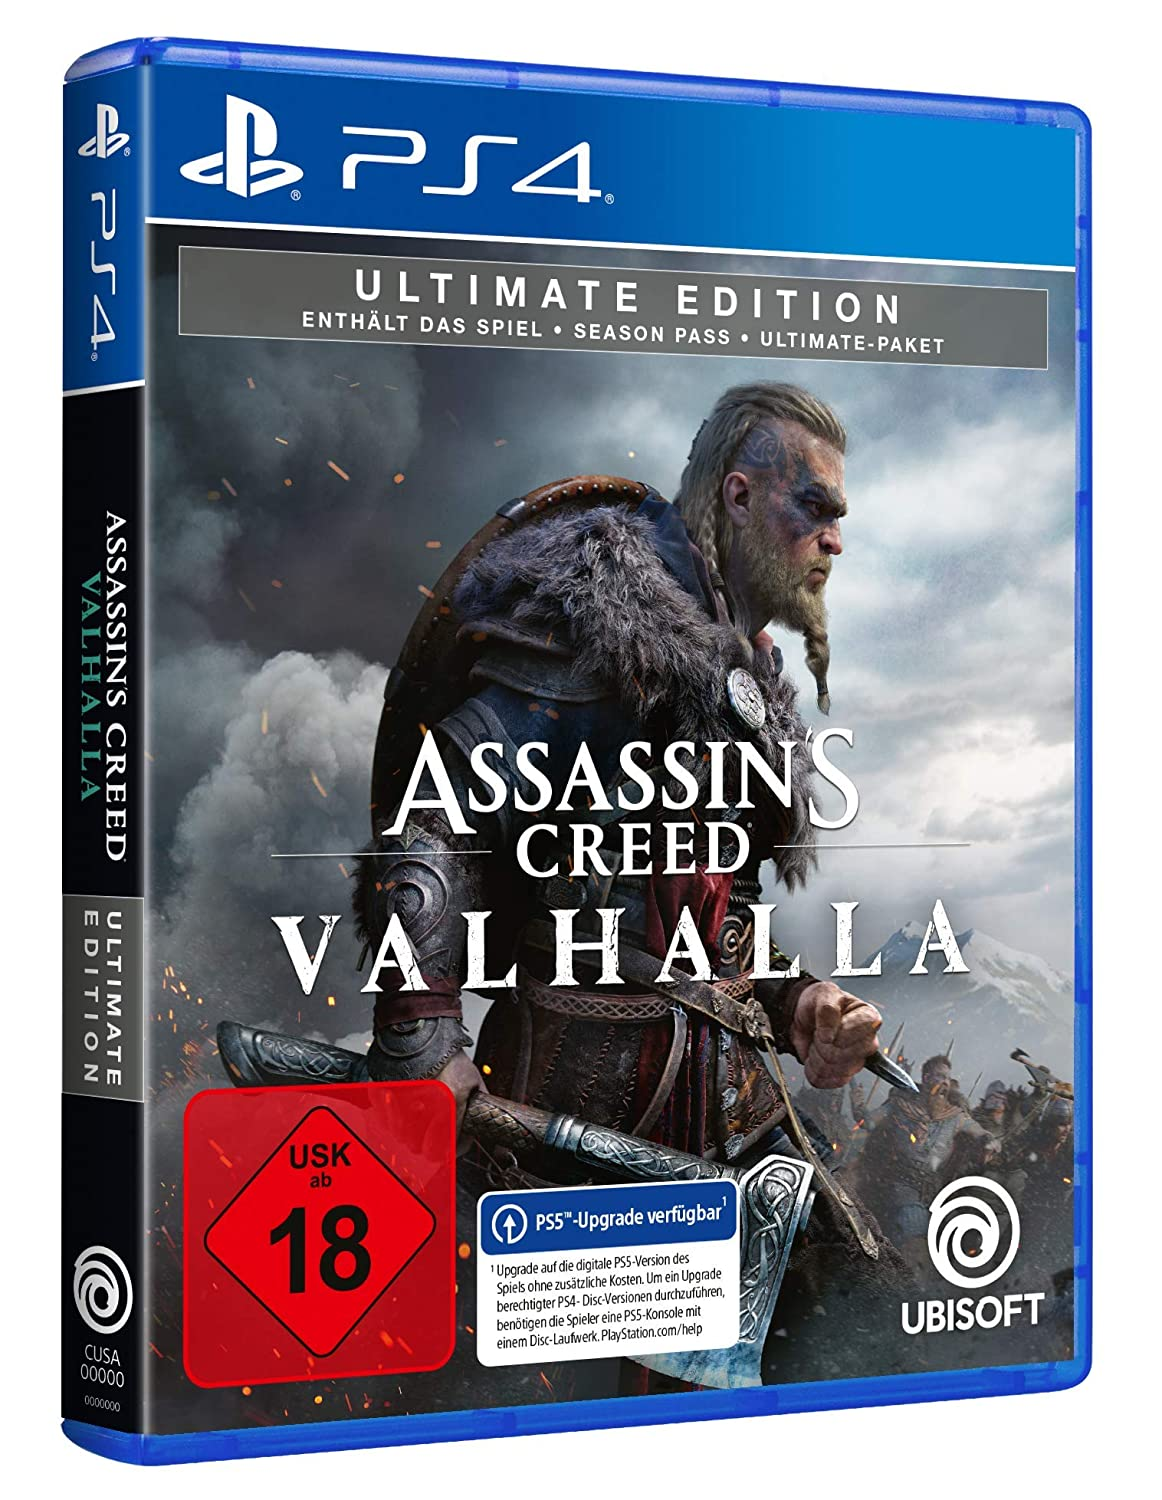 Assassin S Creed Valhalla Ultimate Edition Kostenloses Upgrade Auf Ps5 Uncut Playstation 4 Games